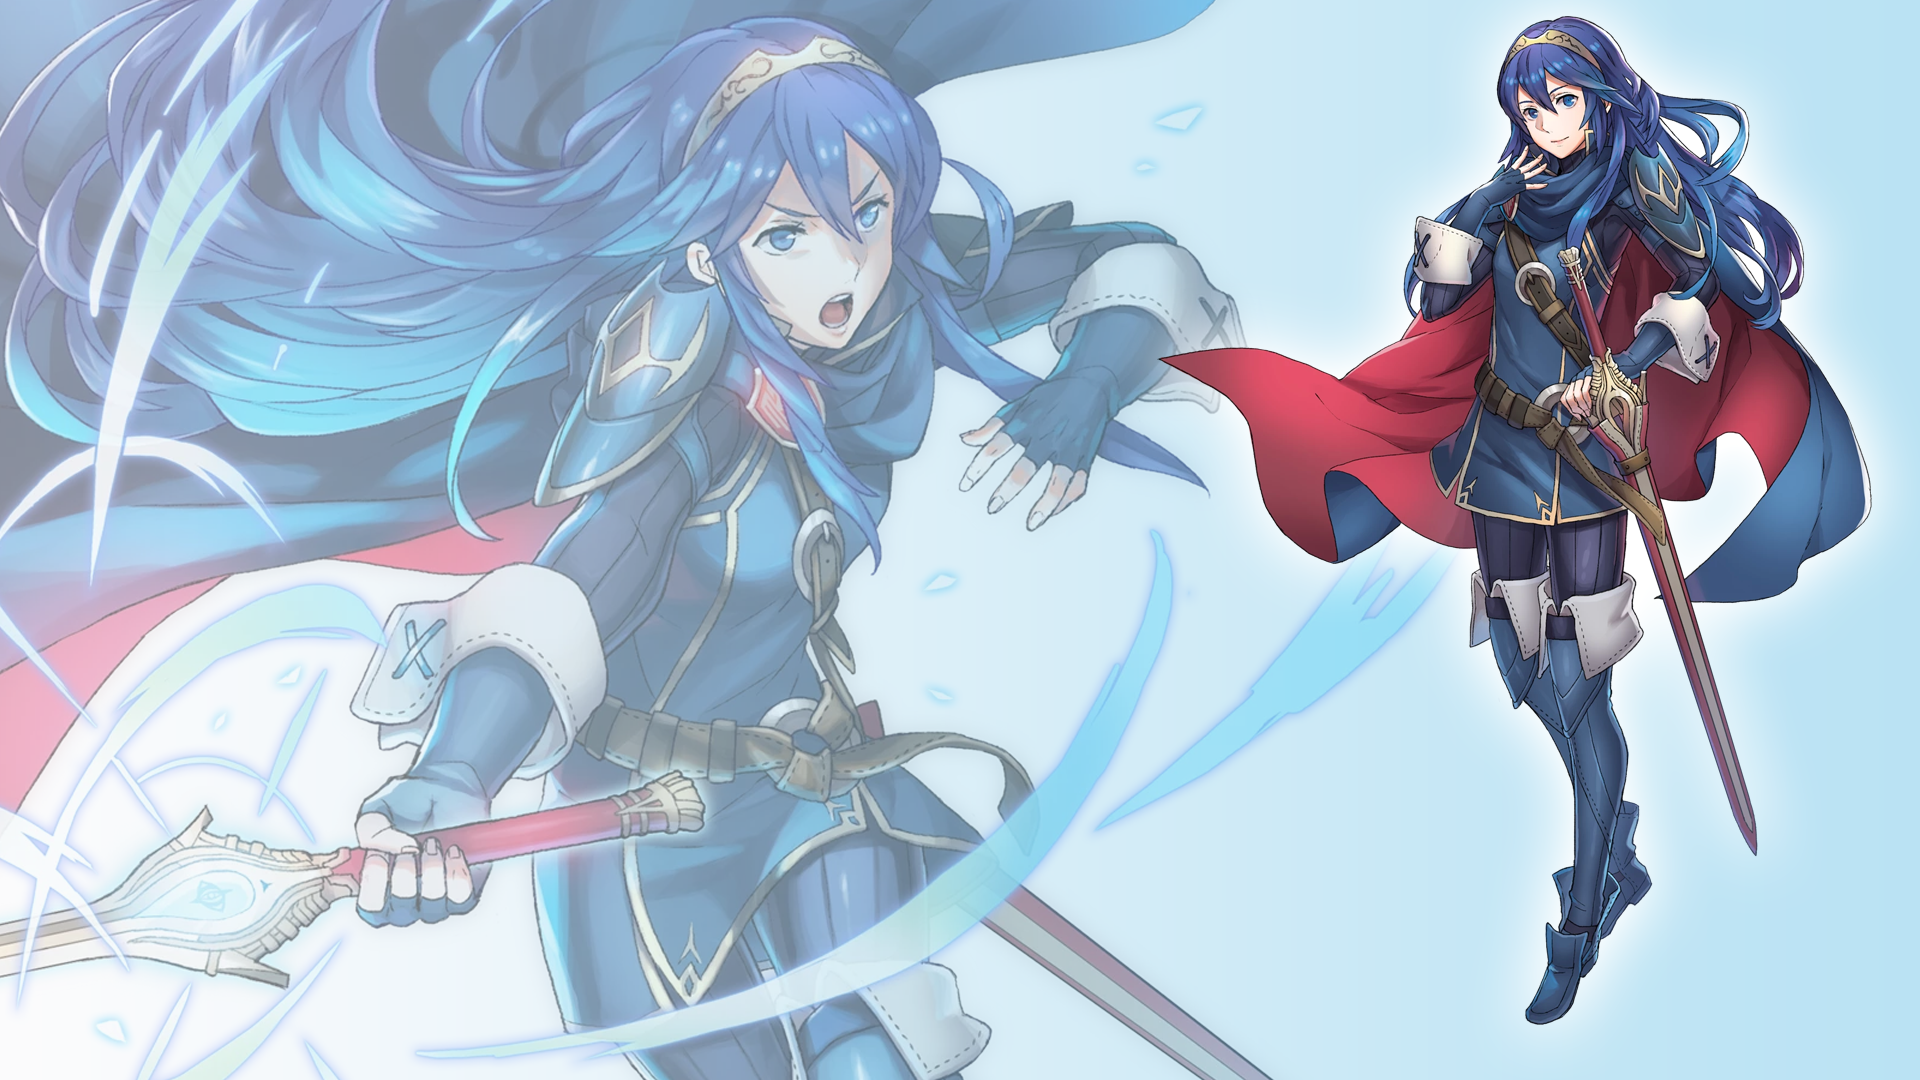 Fire Emblem Lucina Wallpaper By Jesterat On Deviantart